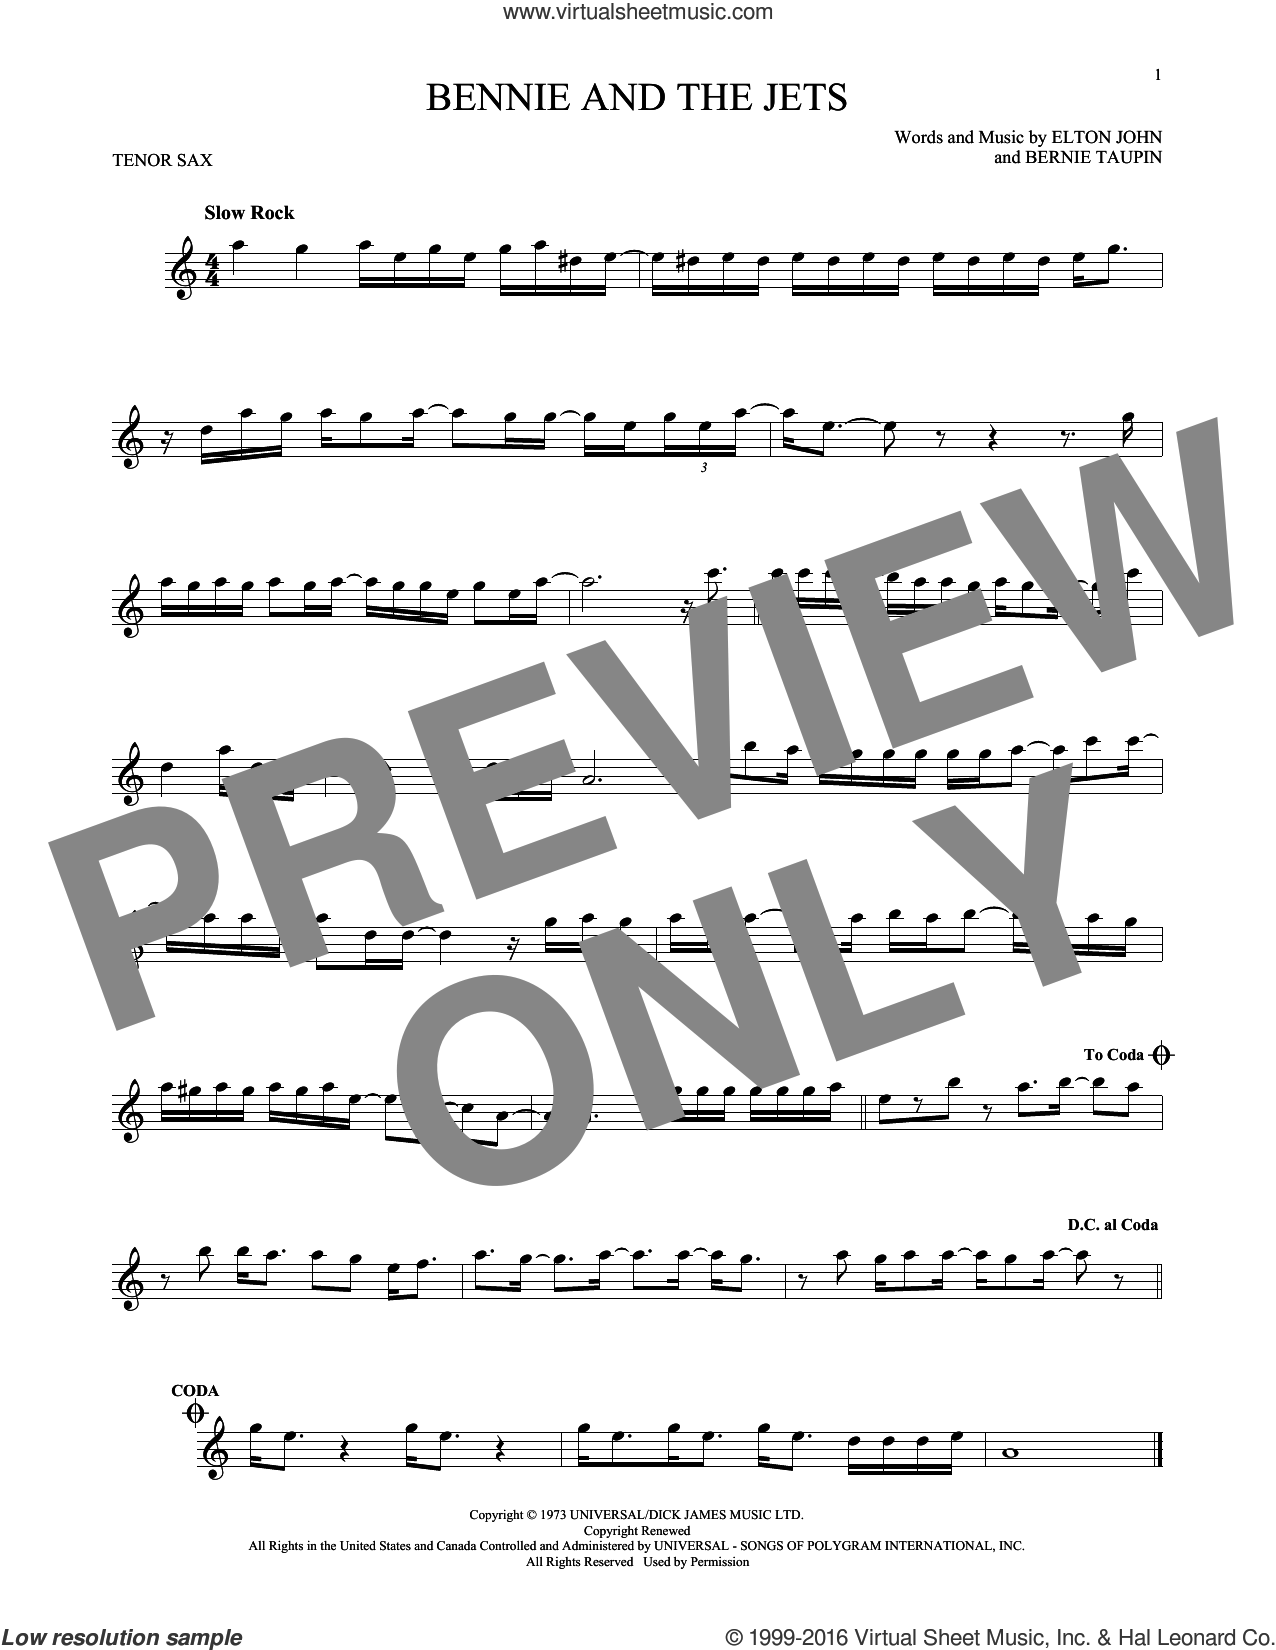 Bennie And The Jets sheet music for tenor saxophone solo by Elton John and Bernie Taupin, intermediate tenor saxophone. Score Image Preview.